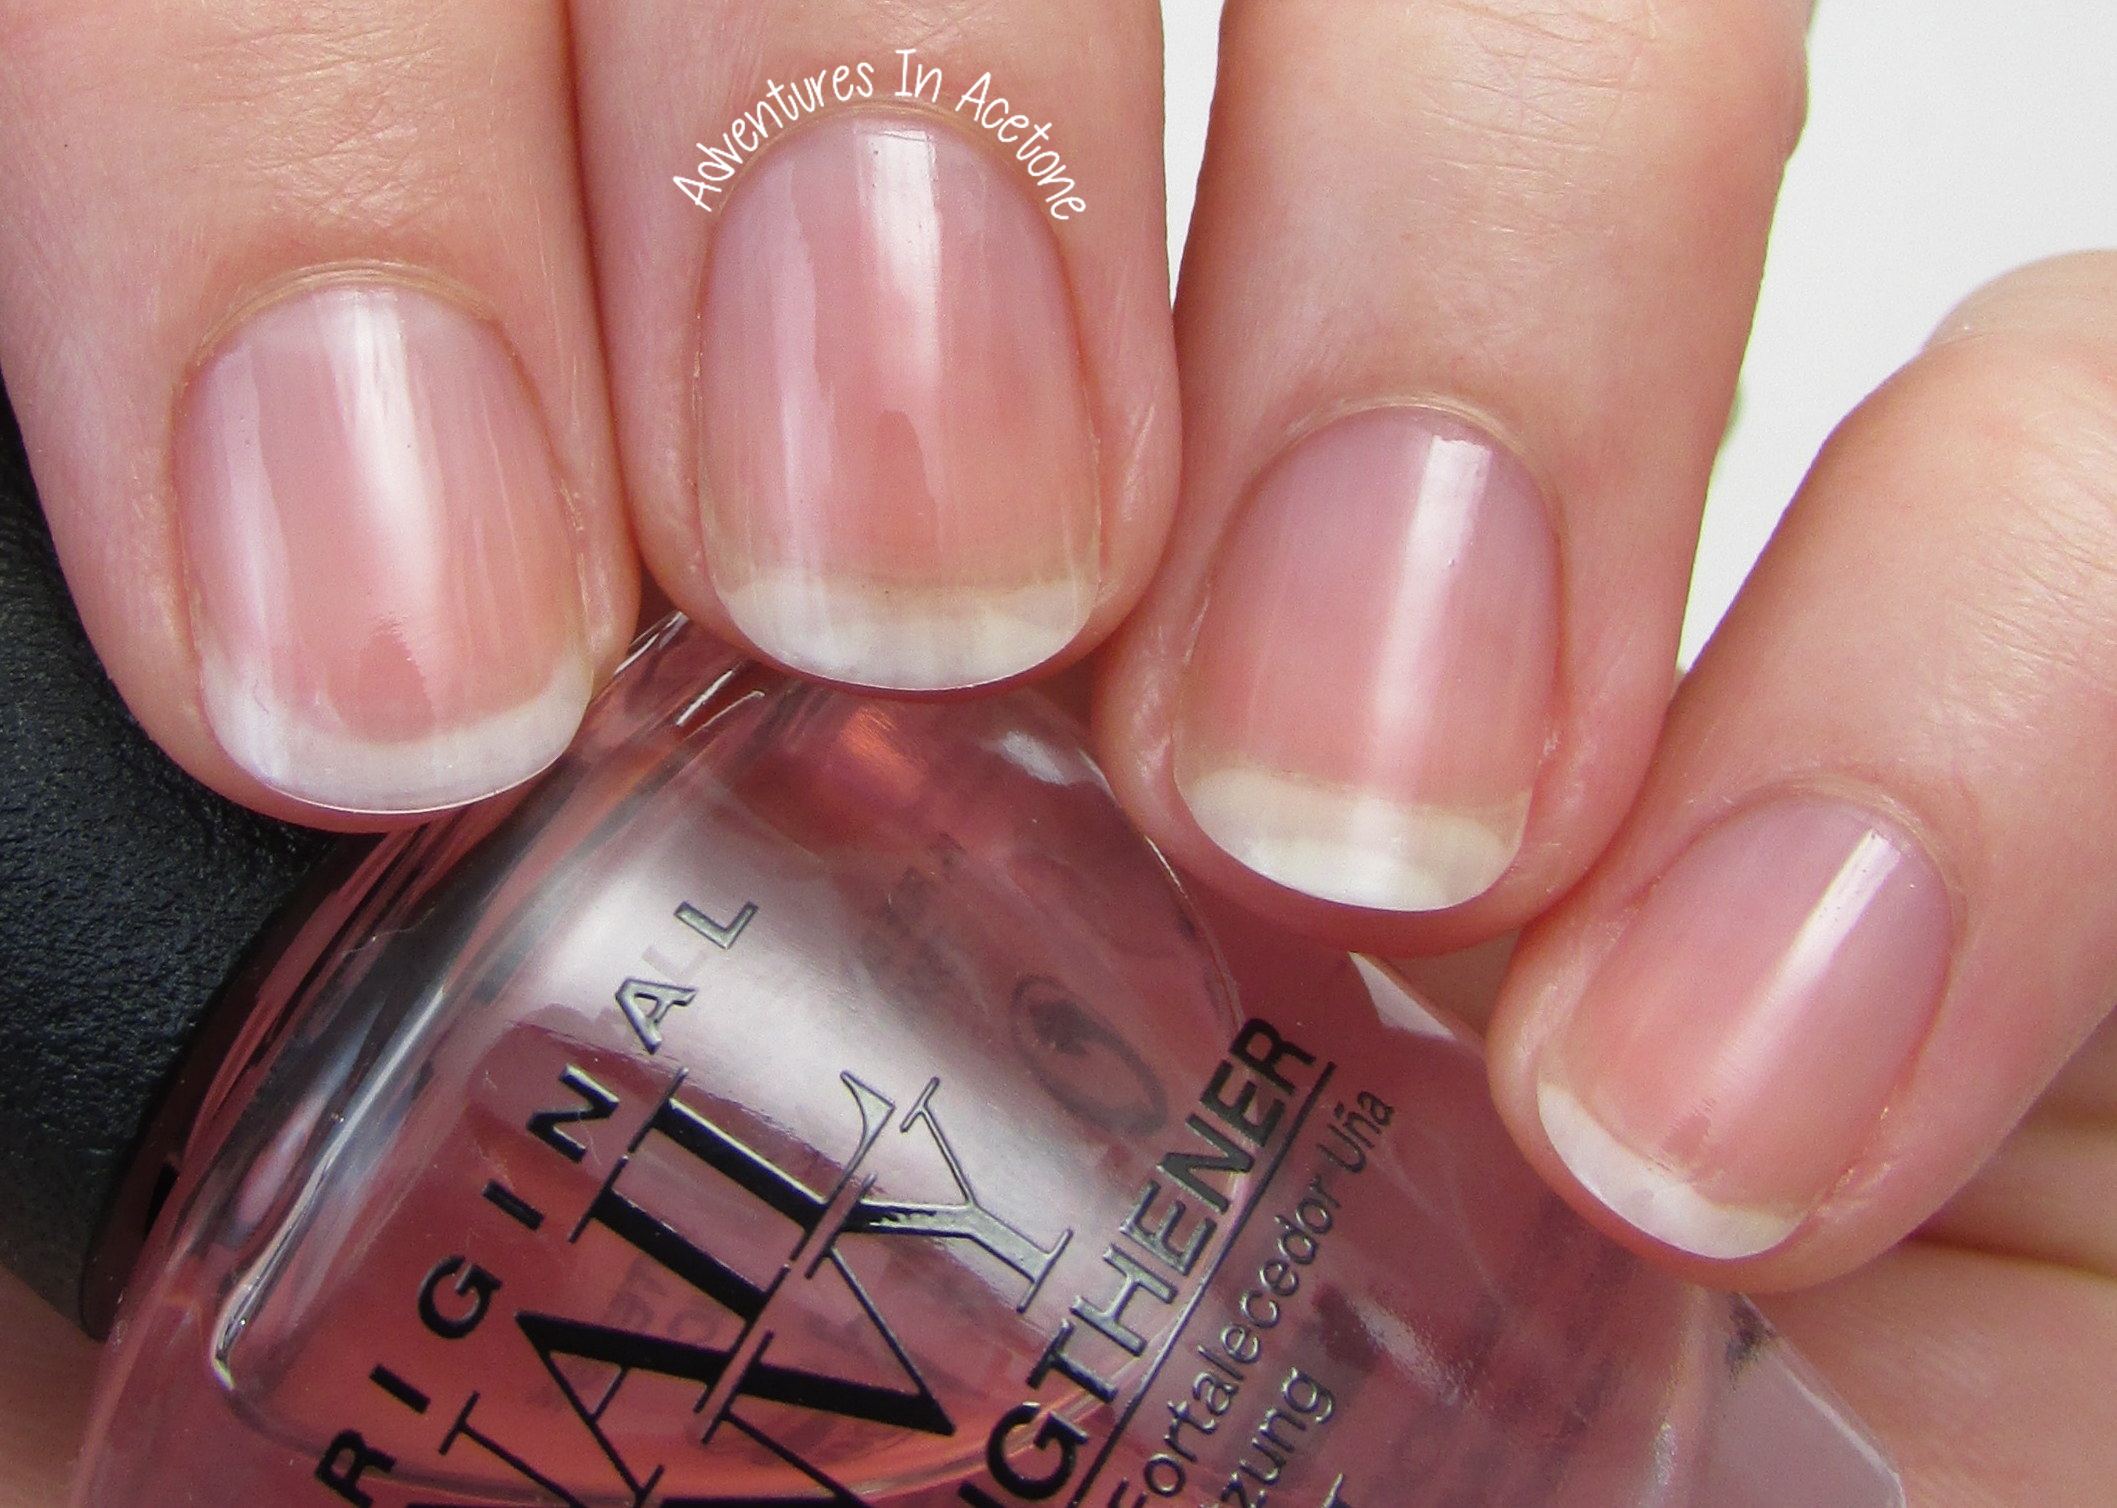 OPI Nail Envy Pink To